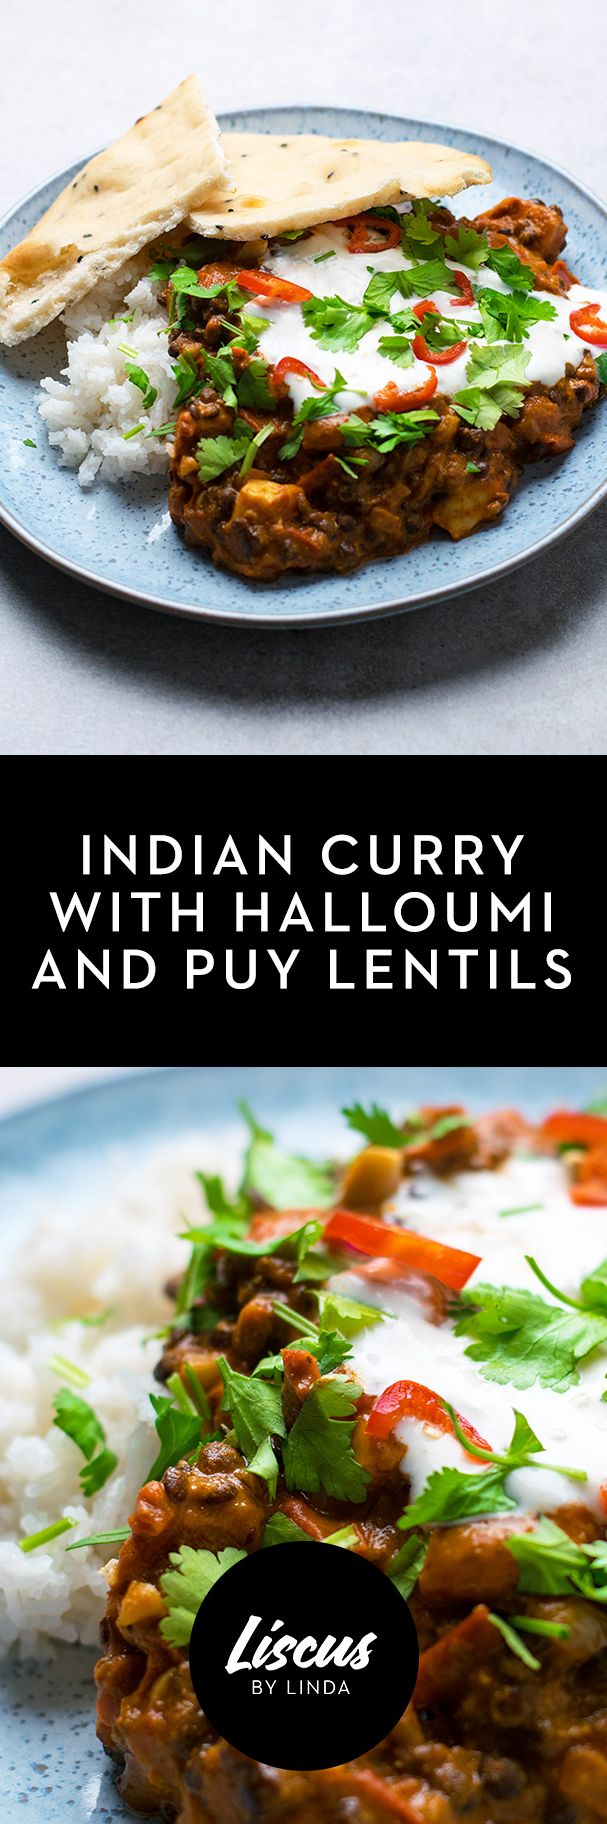 Indian Curry With Halloumi And Puy Lentils Curry Recipes Indian Food Recipes Veggie Recipes